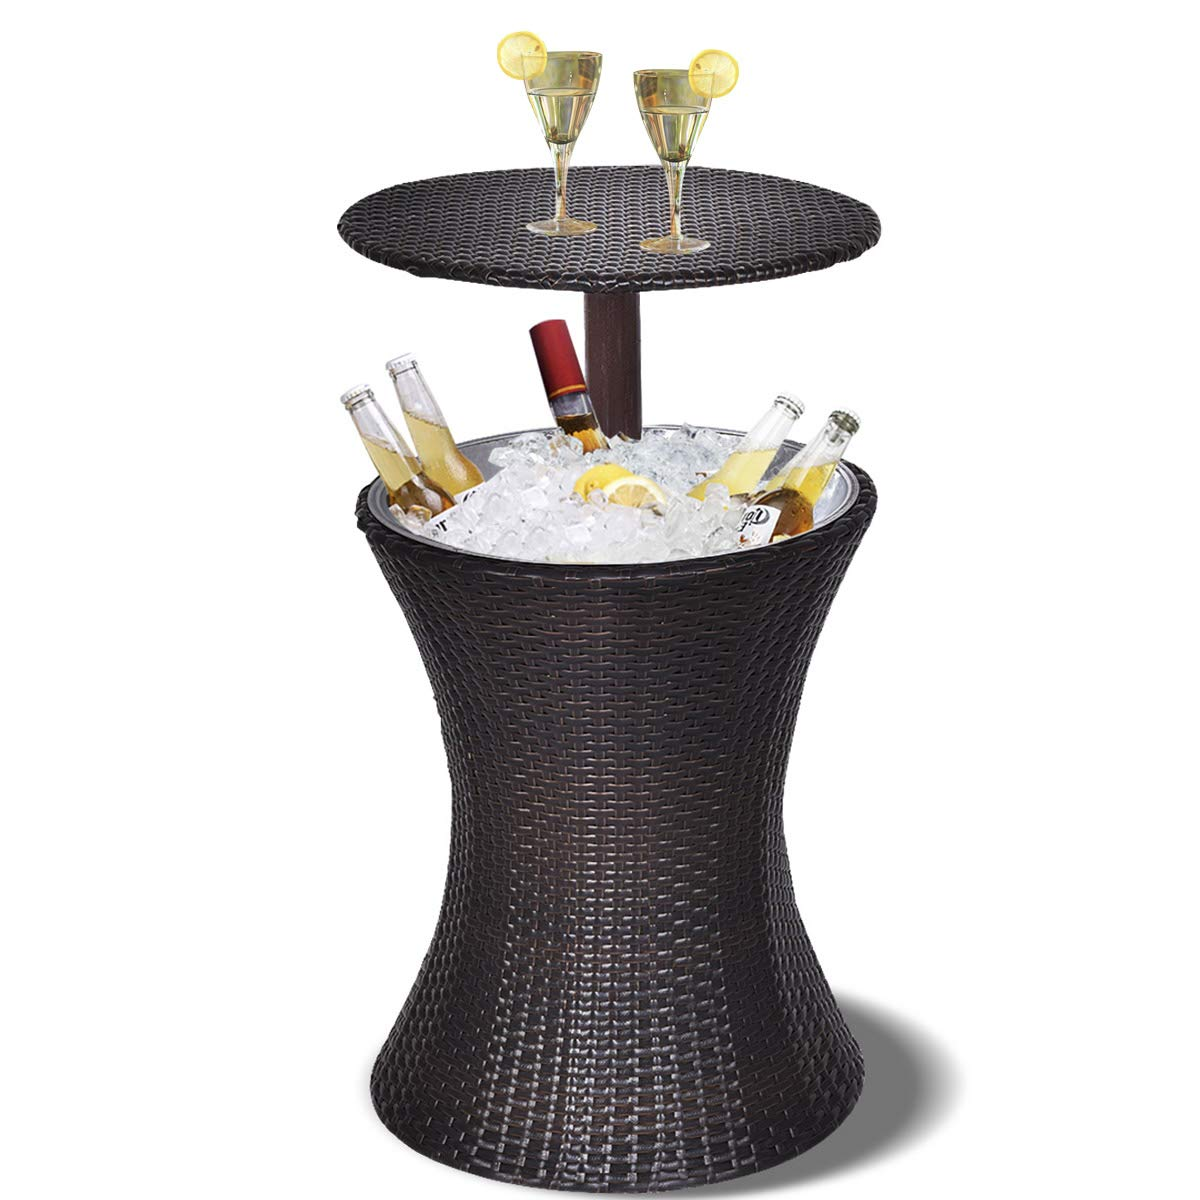 giantex outdoor cool bar rattan style patio side table beverage cooler adjustable height cocktail coffee for party deck pool use brown garden office depot furniture nautical rope